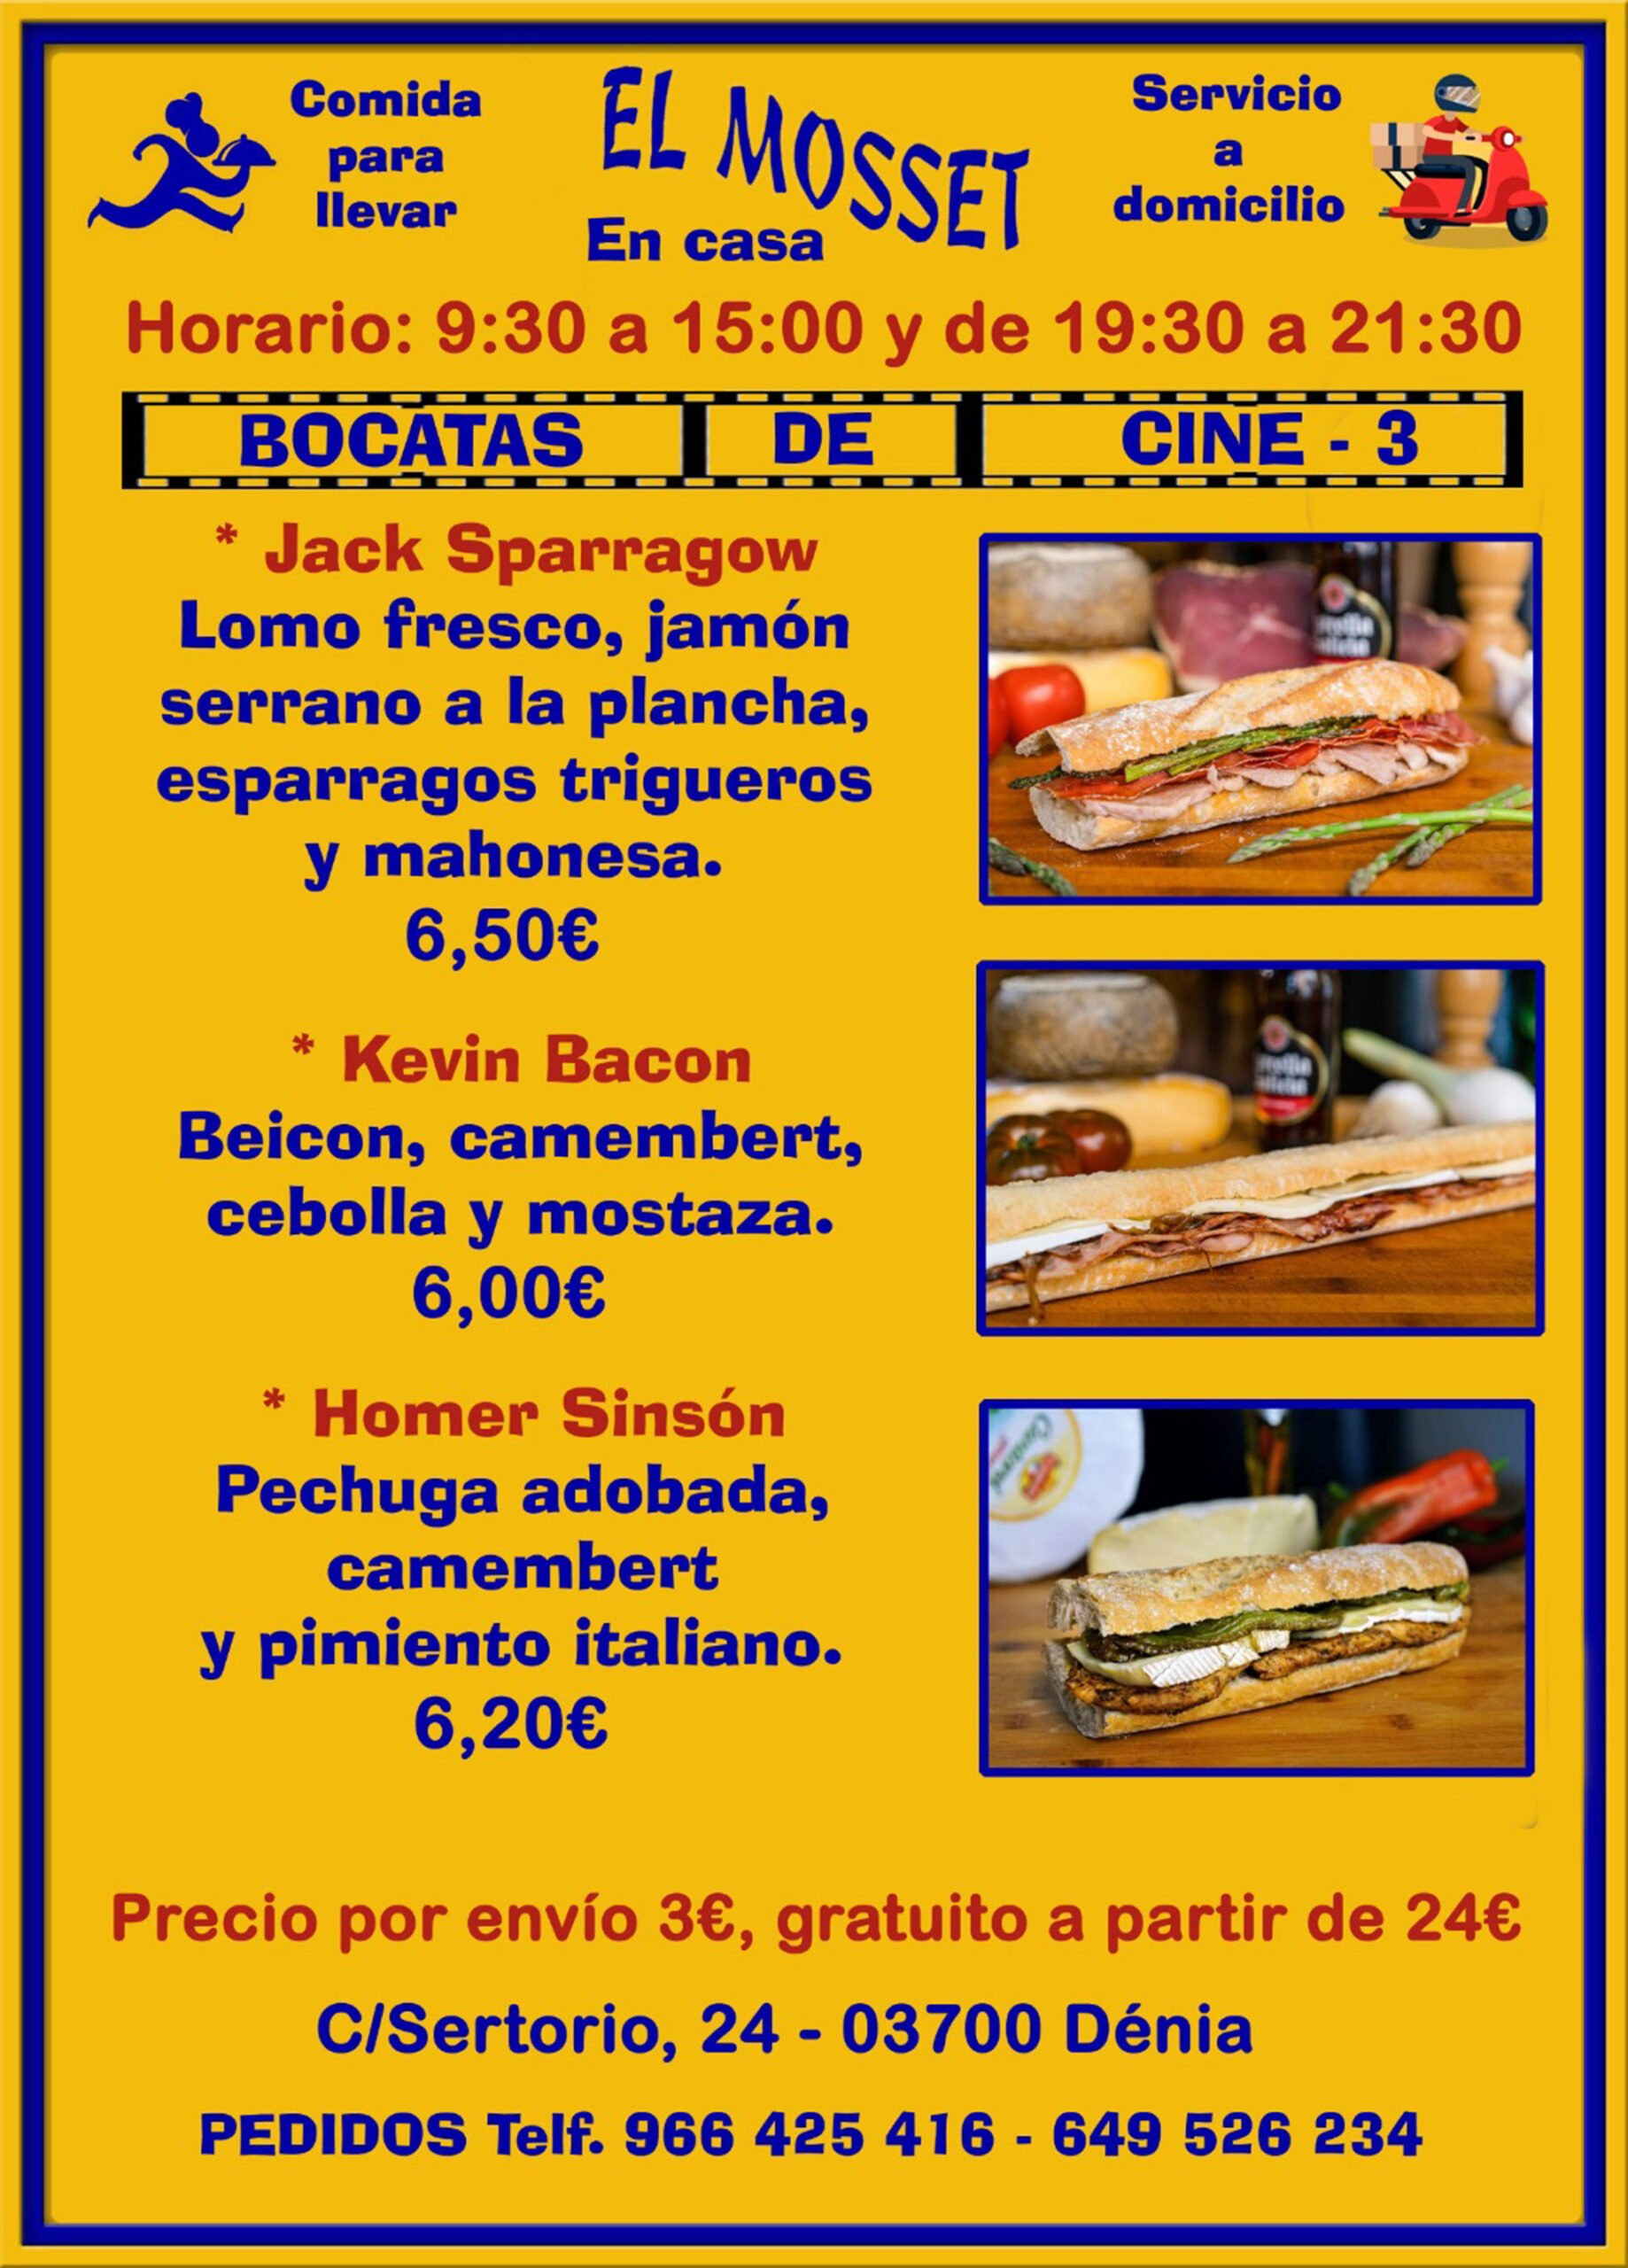 Sandwiches to take away and at home in Dénia (Cinema Sandwiches 3) - El Mosset